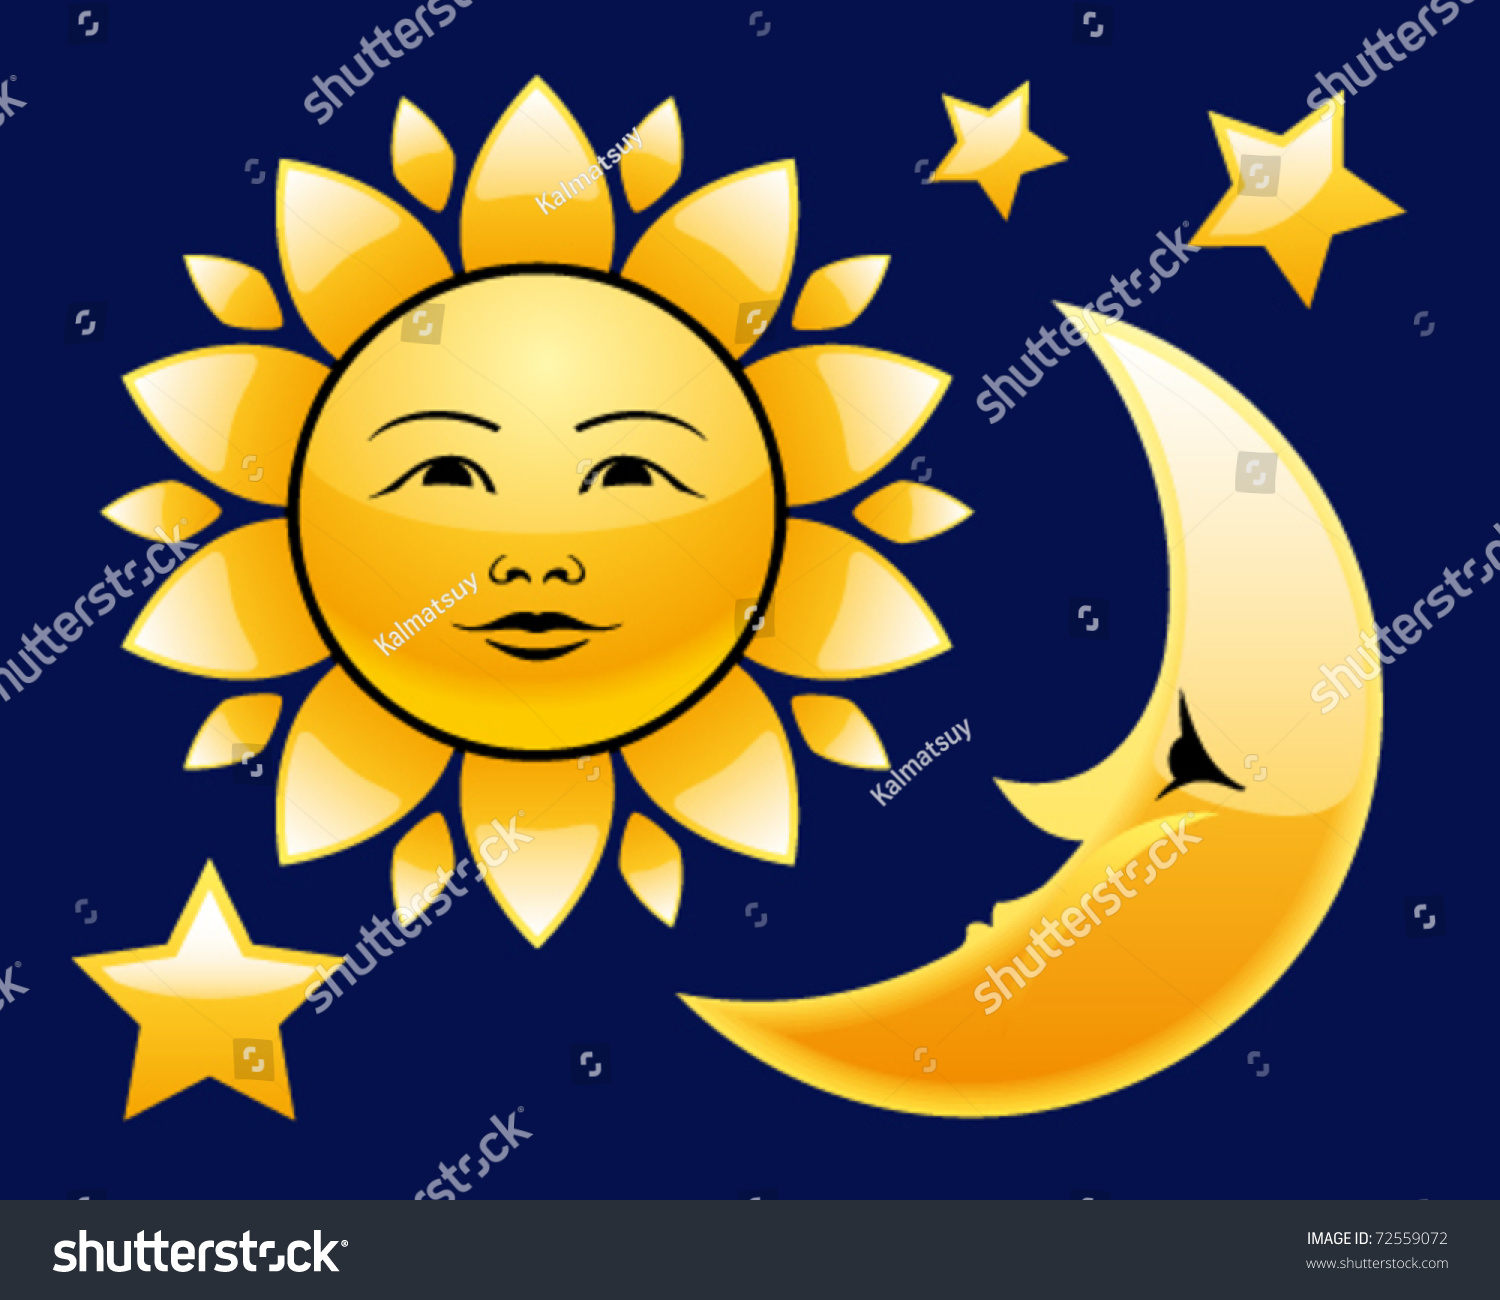 worksheet Sun And Stars showing post media for sun and stars cartoon www cartoonsmix com star jpg 1500x1300 cartoon